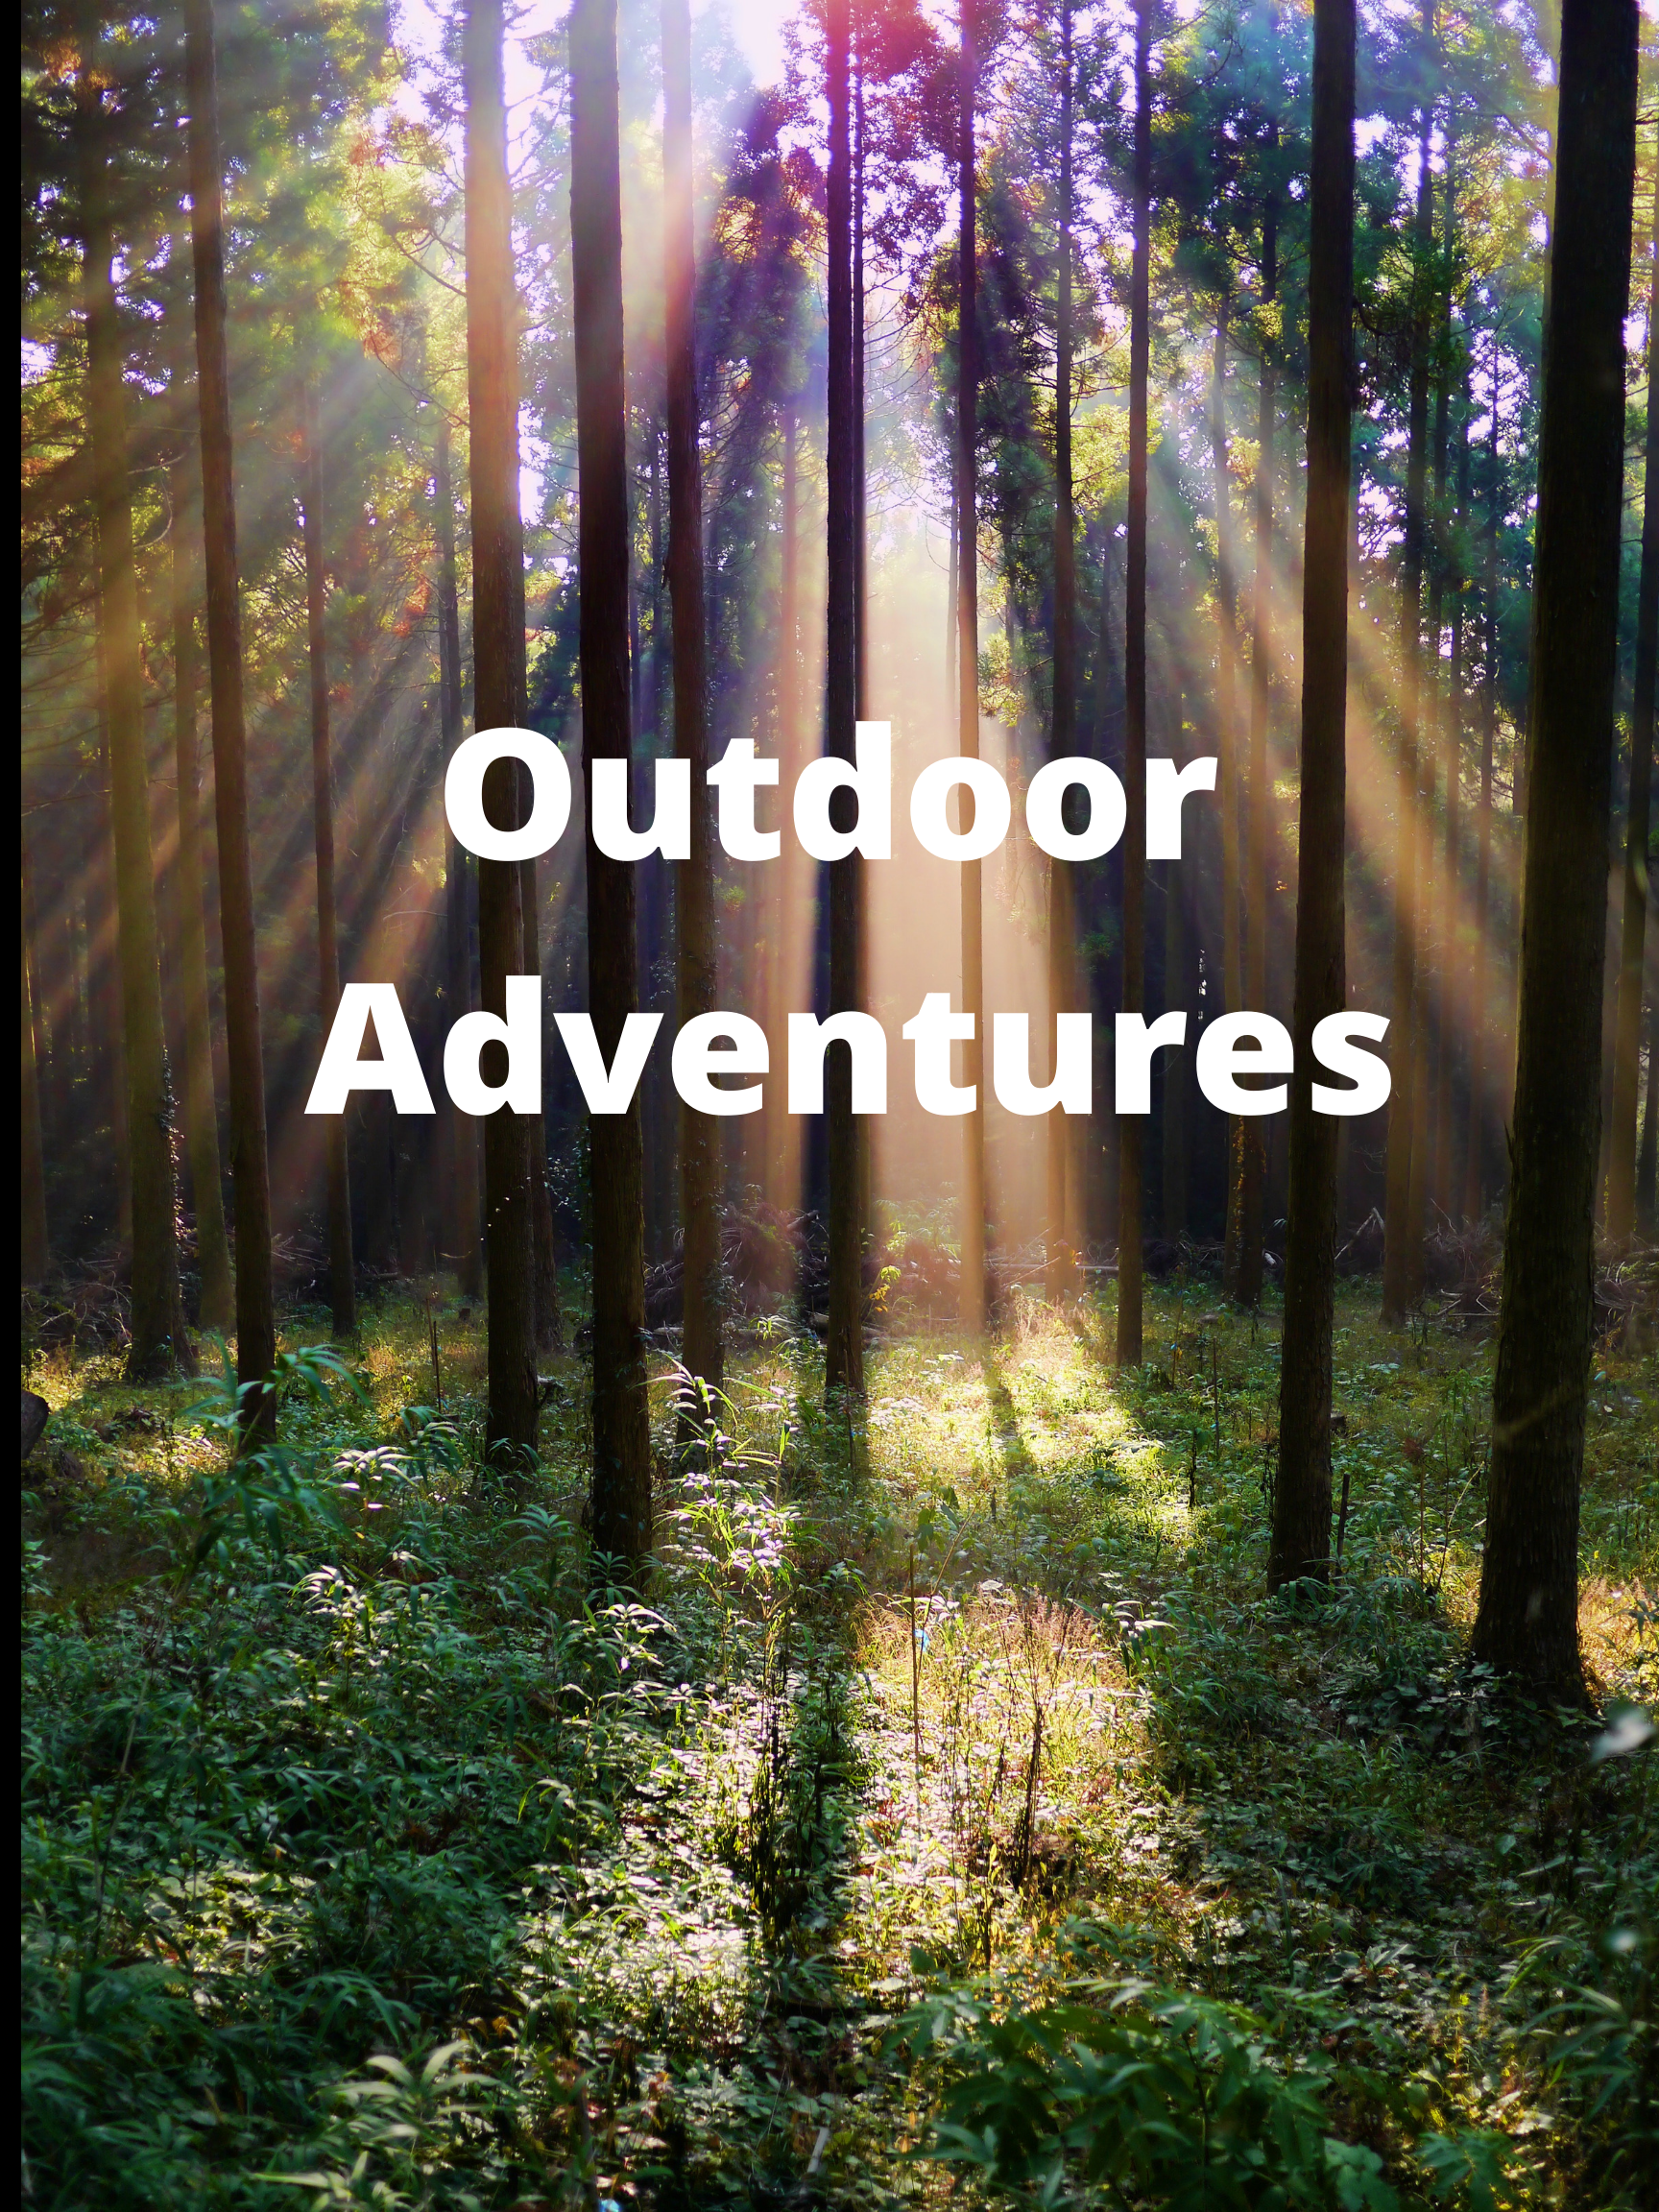 Outdoor Adventures Image